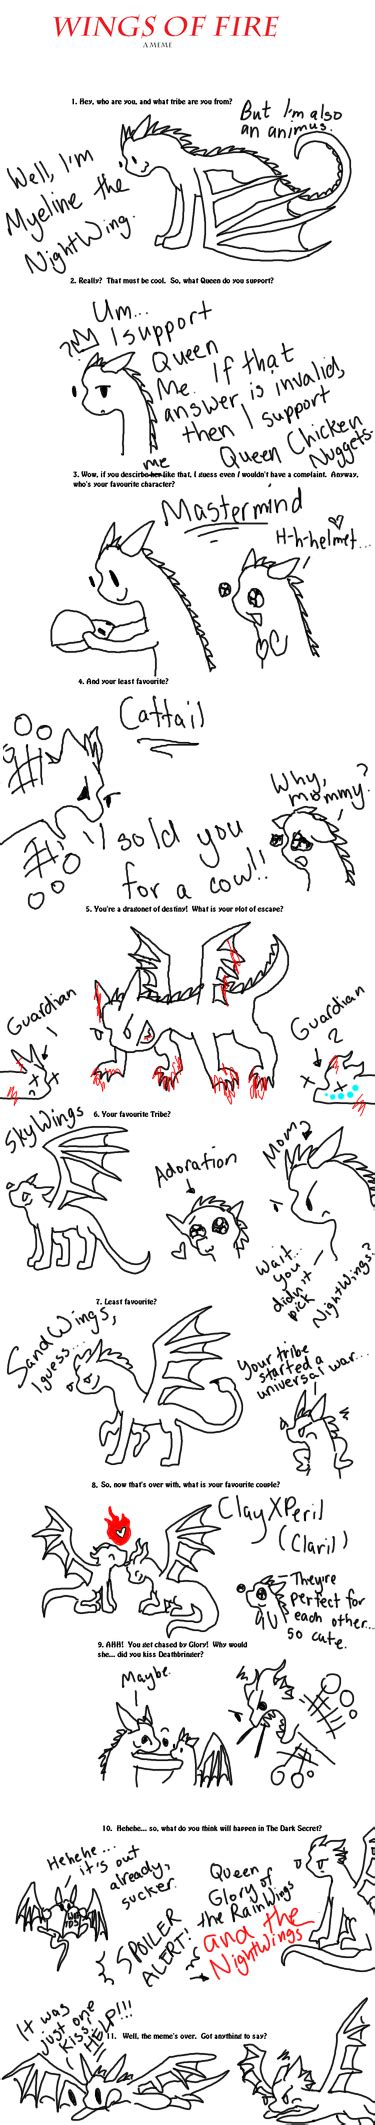 Wings Of Fire Memes - wings of fire meme myeline by shadowsoarhawkflight on deviantart